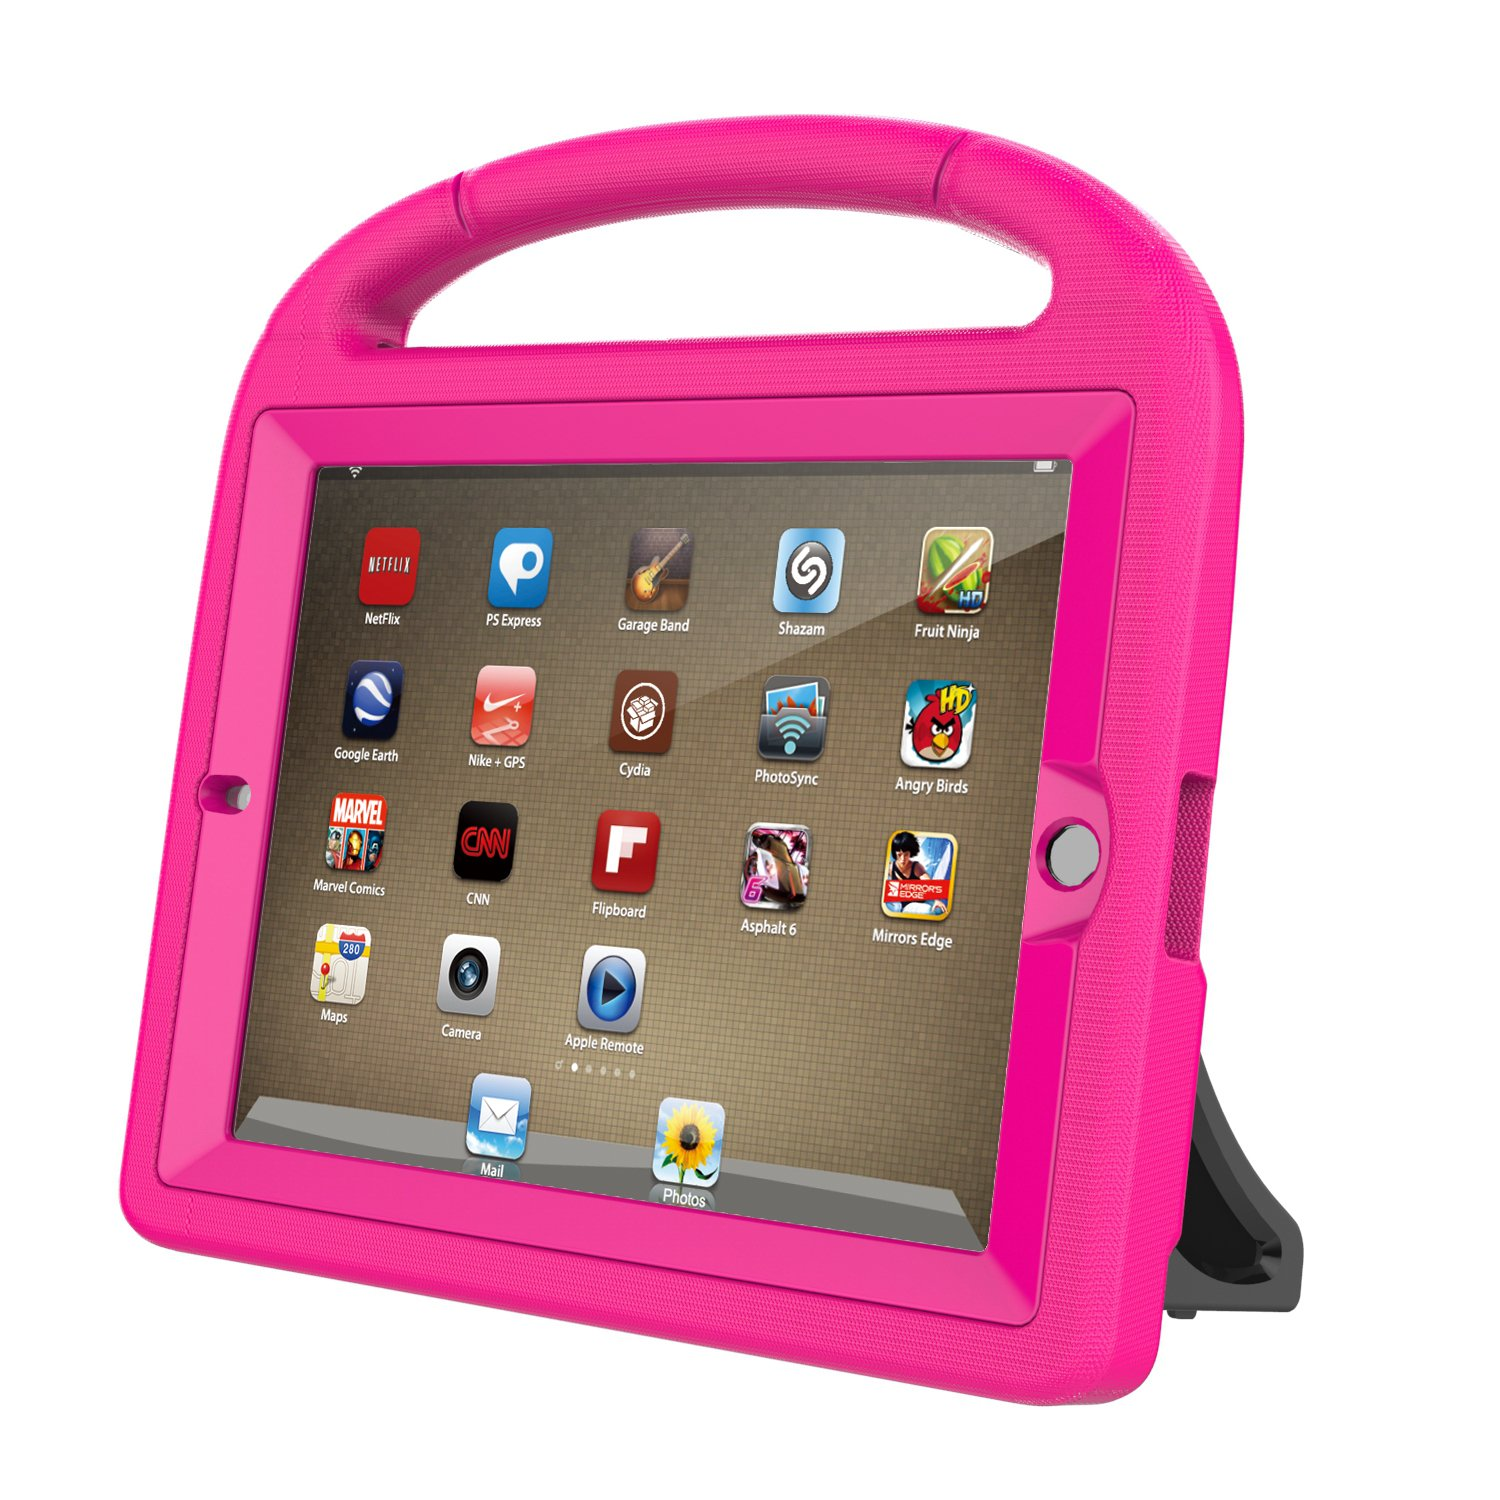 LTROP iPad 2 3 4 Kids Case - Light Weight Shock Proof Handle Friendly Convertible Stand Kids Case with Bulit in Screen Protector for iPad 2, iPad 3rd Generation, iPad 4th Generation,Rose by LTROP (Image #6)